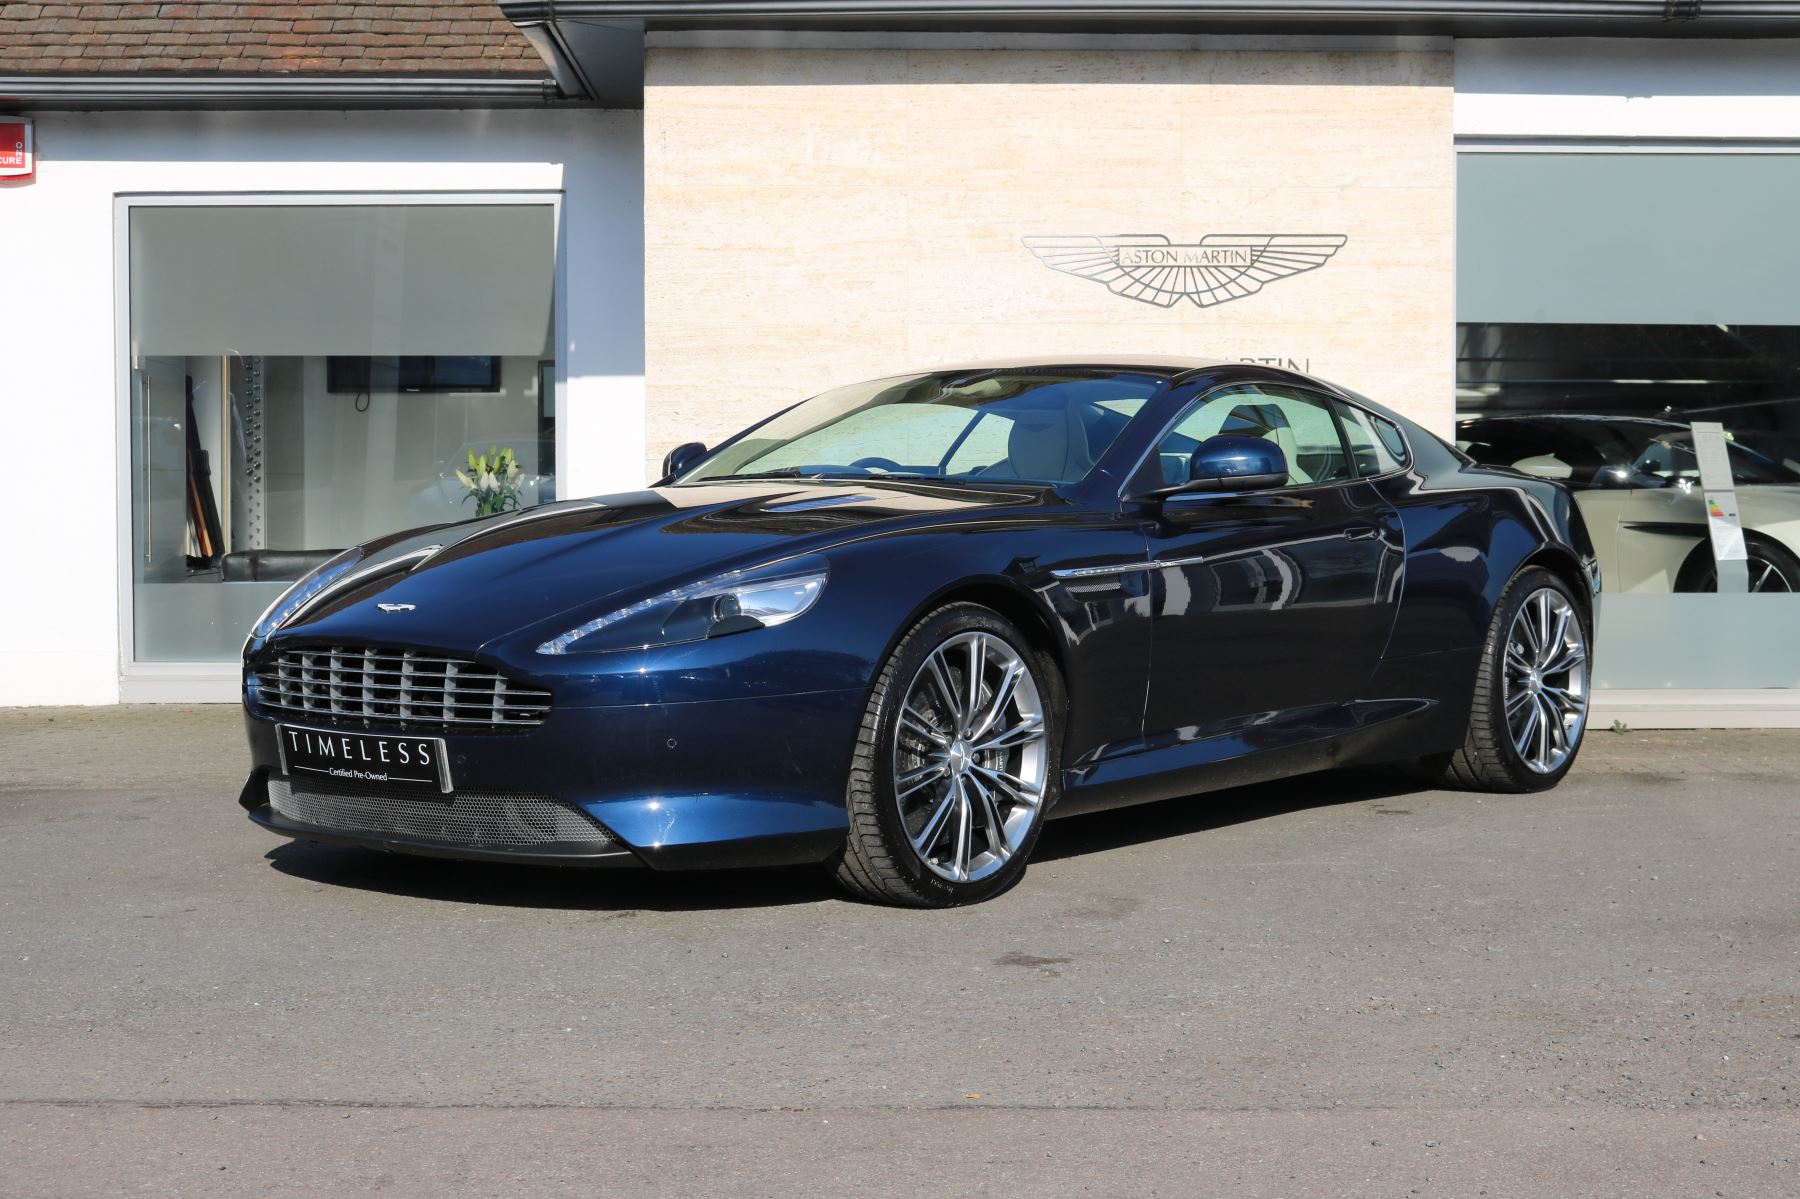 Aston Martin V Vantage S Coupe S Dr Sportshift III Automatic - Aston martin db9 pre owned